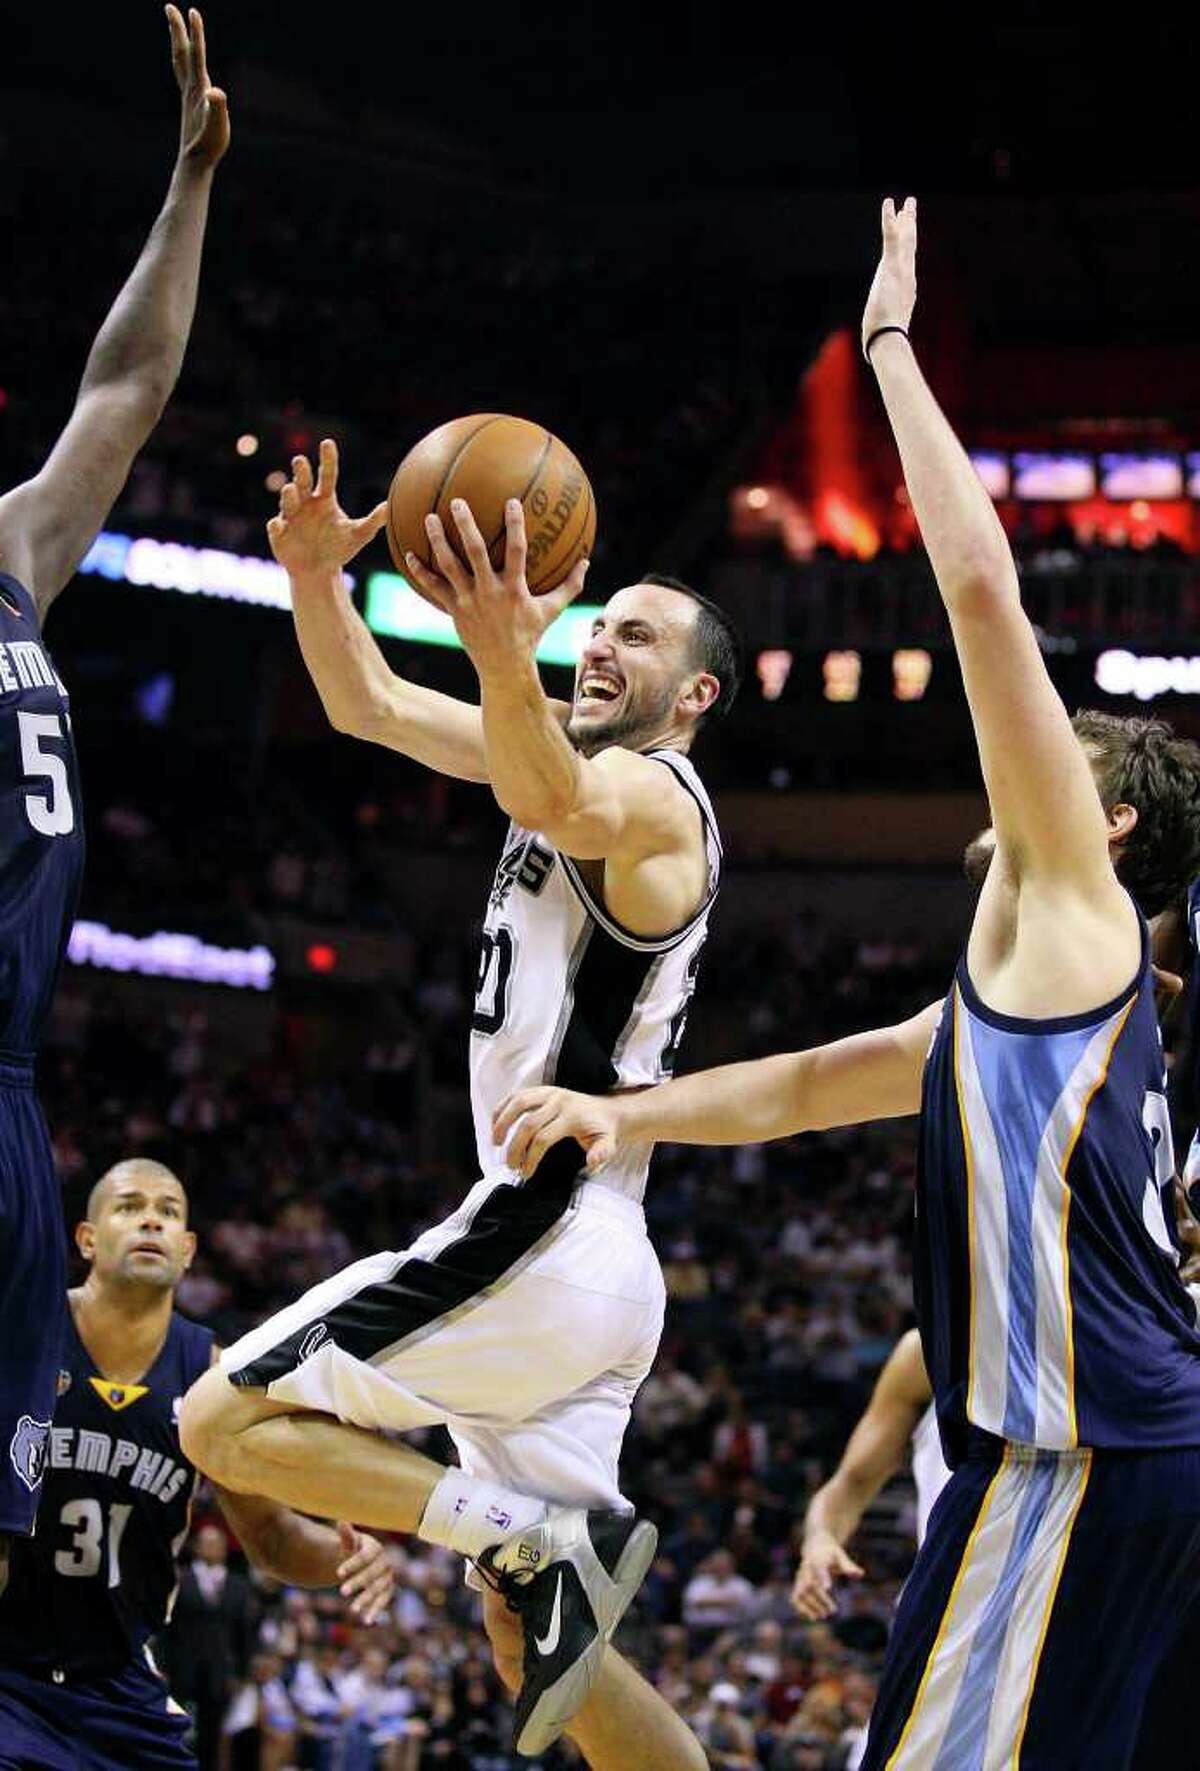 FOR SPORTS - Spurs' Manu Ginobili drives to the basket between Grizzlies defenders during second half action Sunday Feb 27, 2011 at the AT&T Center. The Spurs won 95-88. (PHOTO BY EDWARD A. ORNELAS/eaornelas@express-news.net)